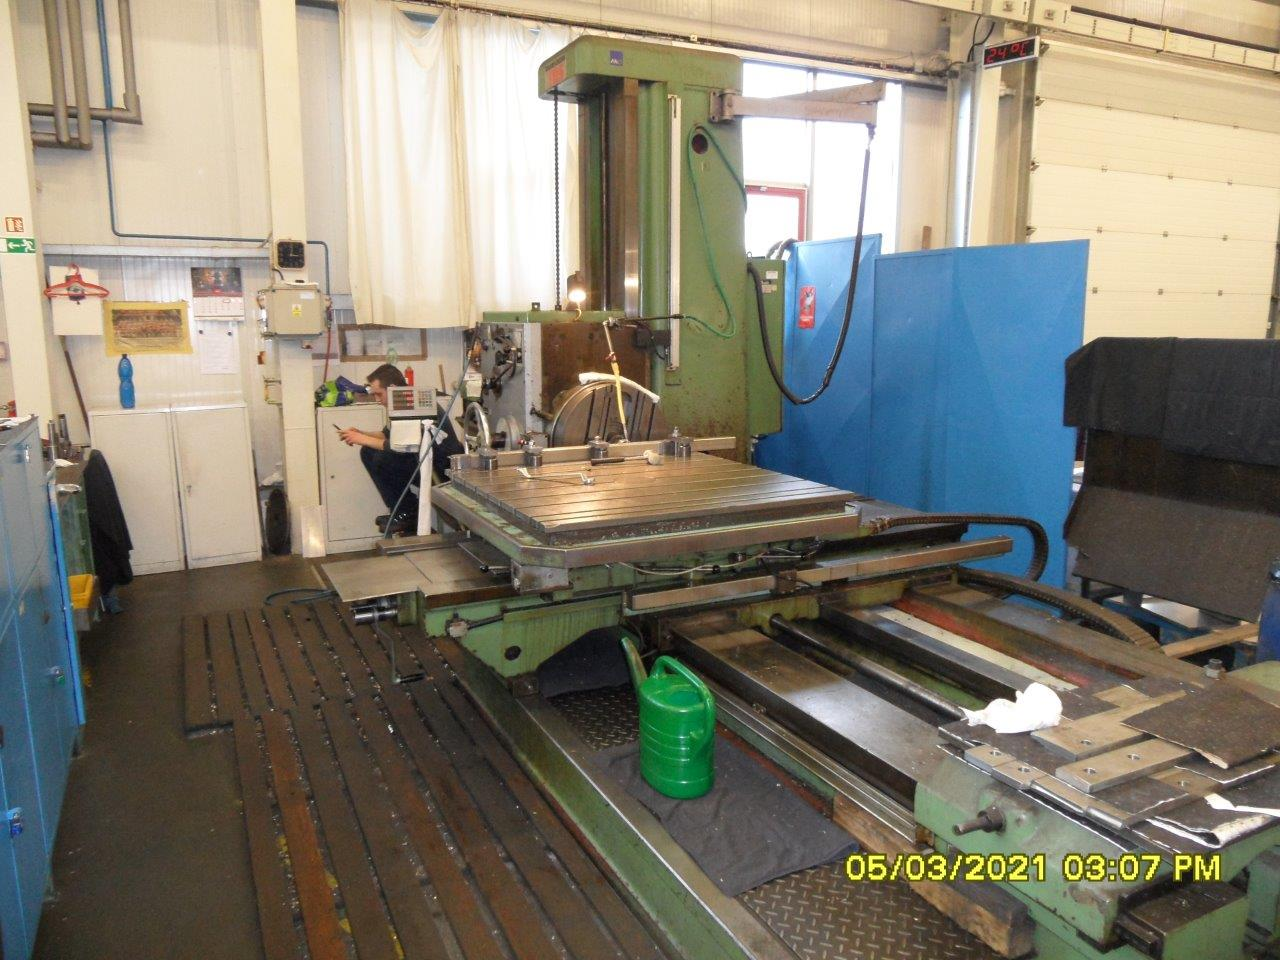 TOS Varnsdorf Horizontal Boring Mill with spindle diameter over 90 mm (3.5